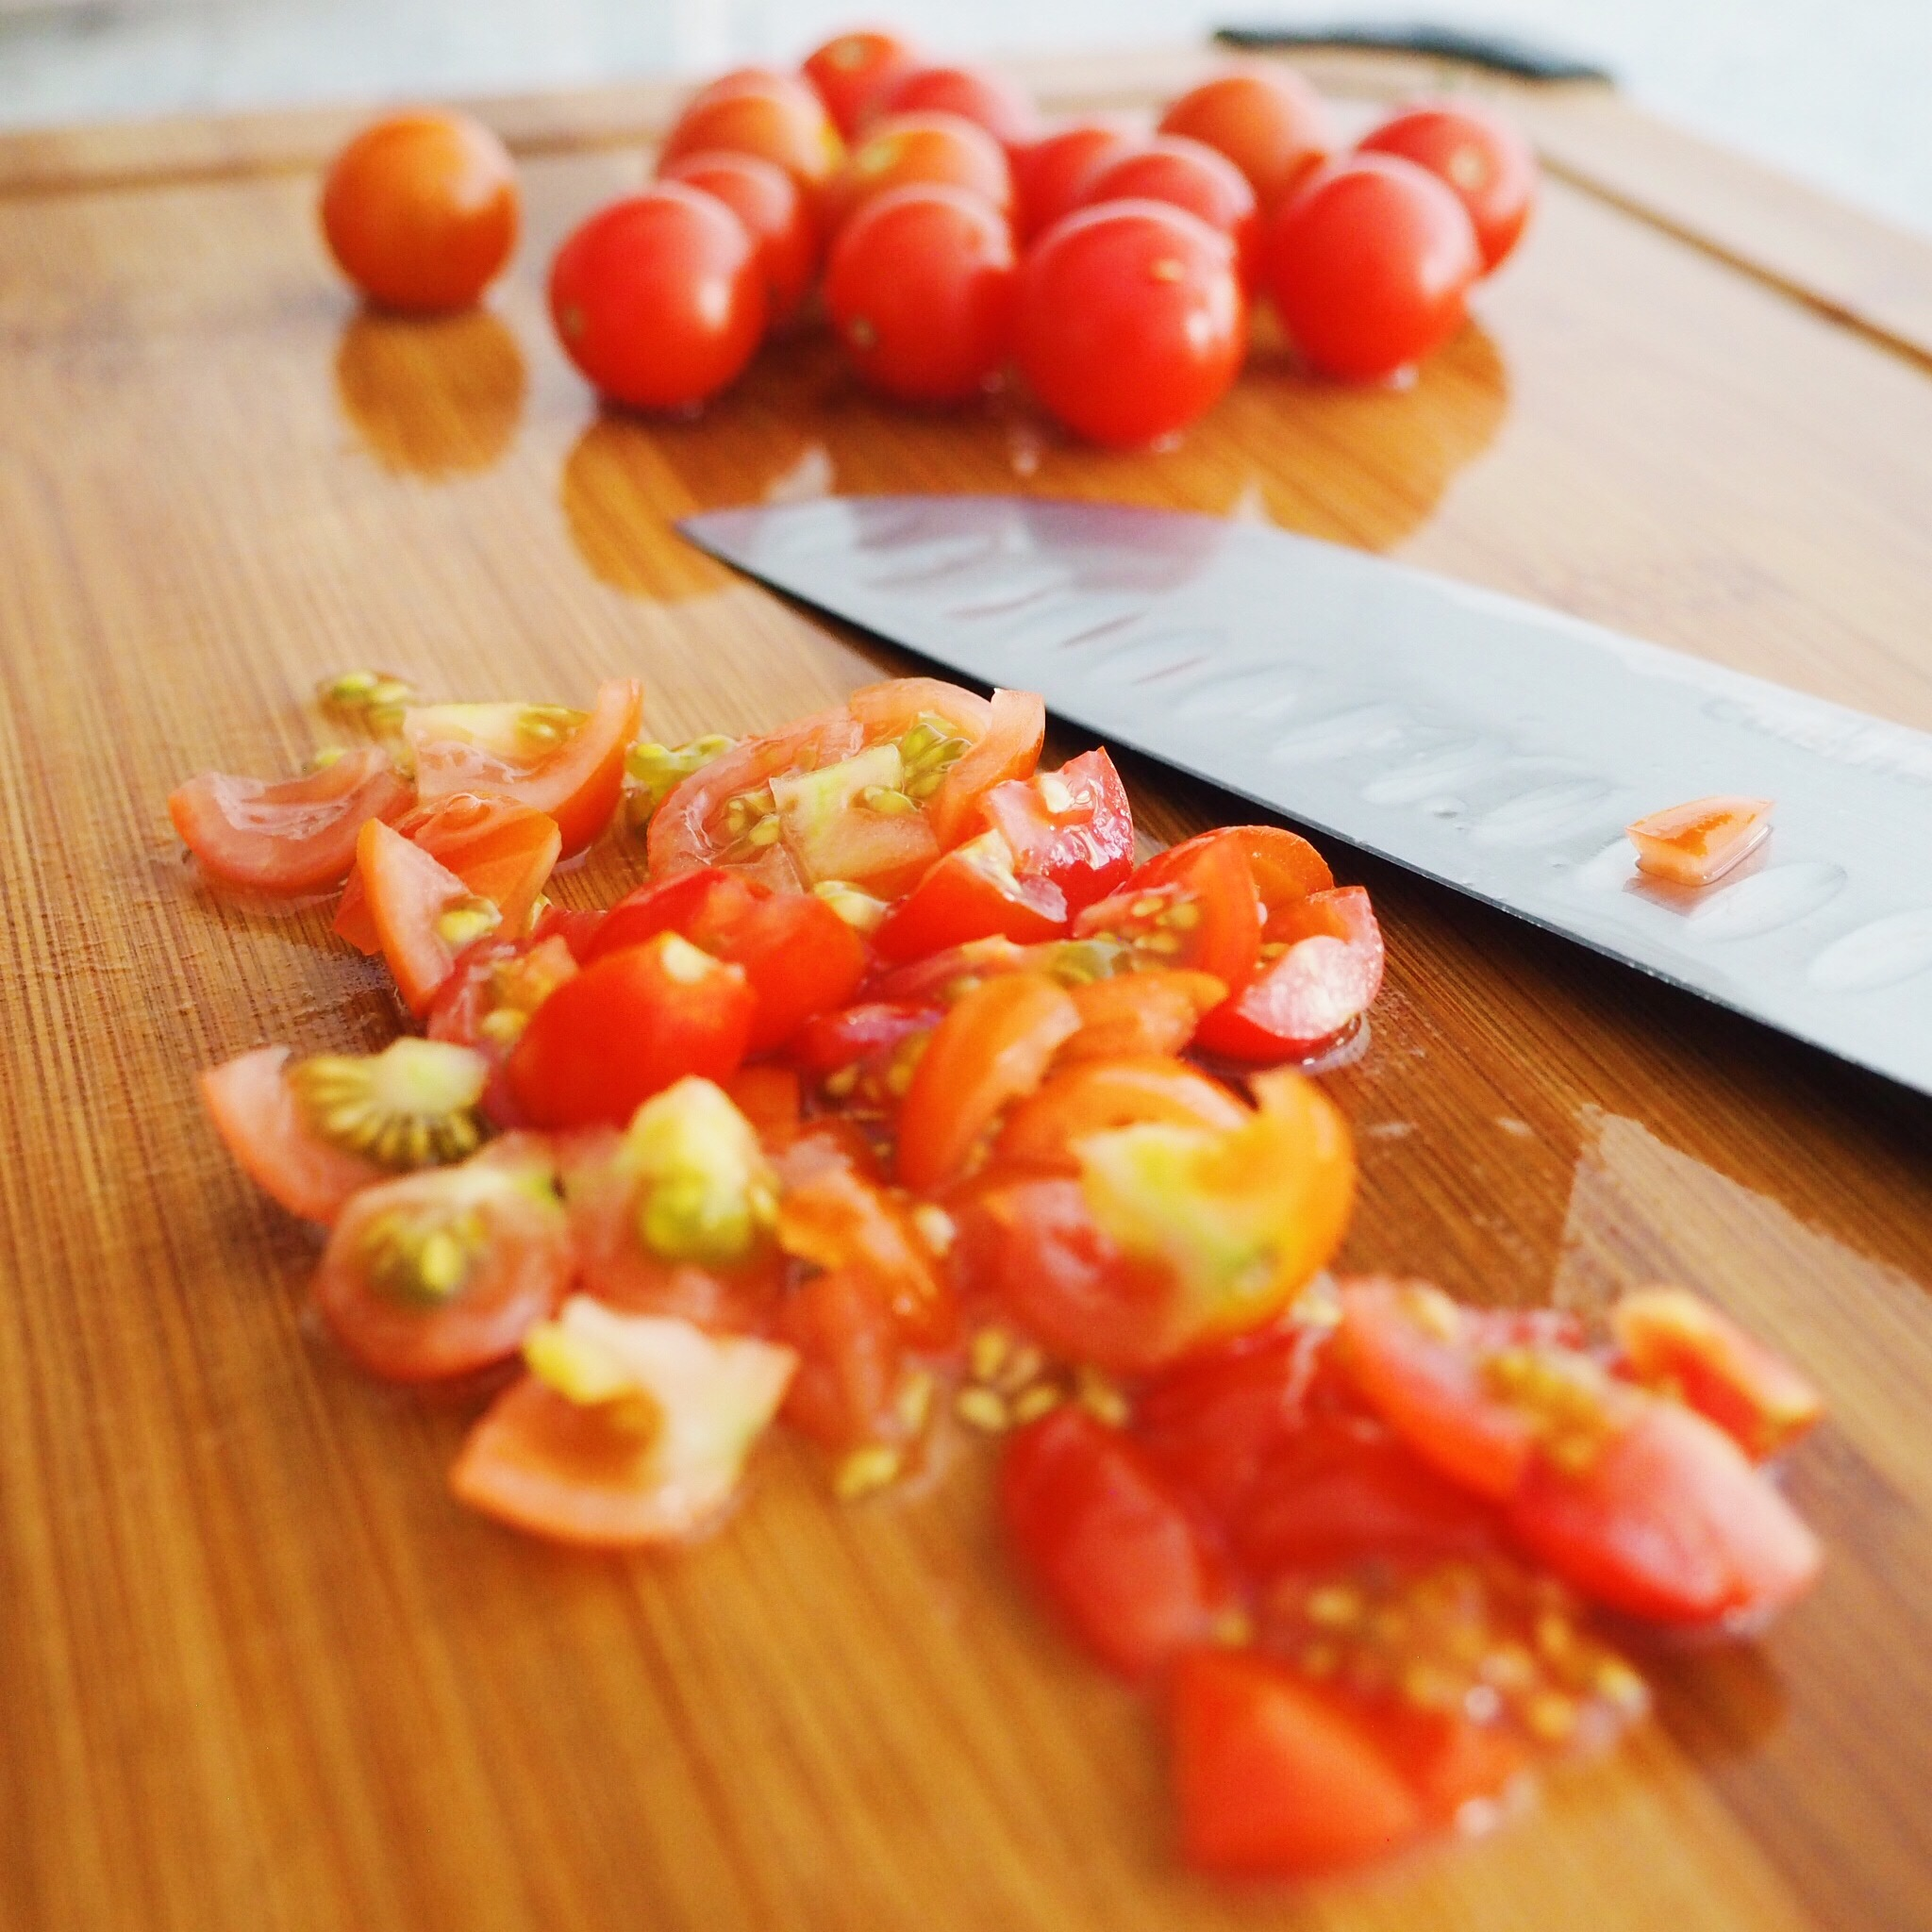 Step 8 - Meanwhile, finely chop your cherry tomatoes.